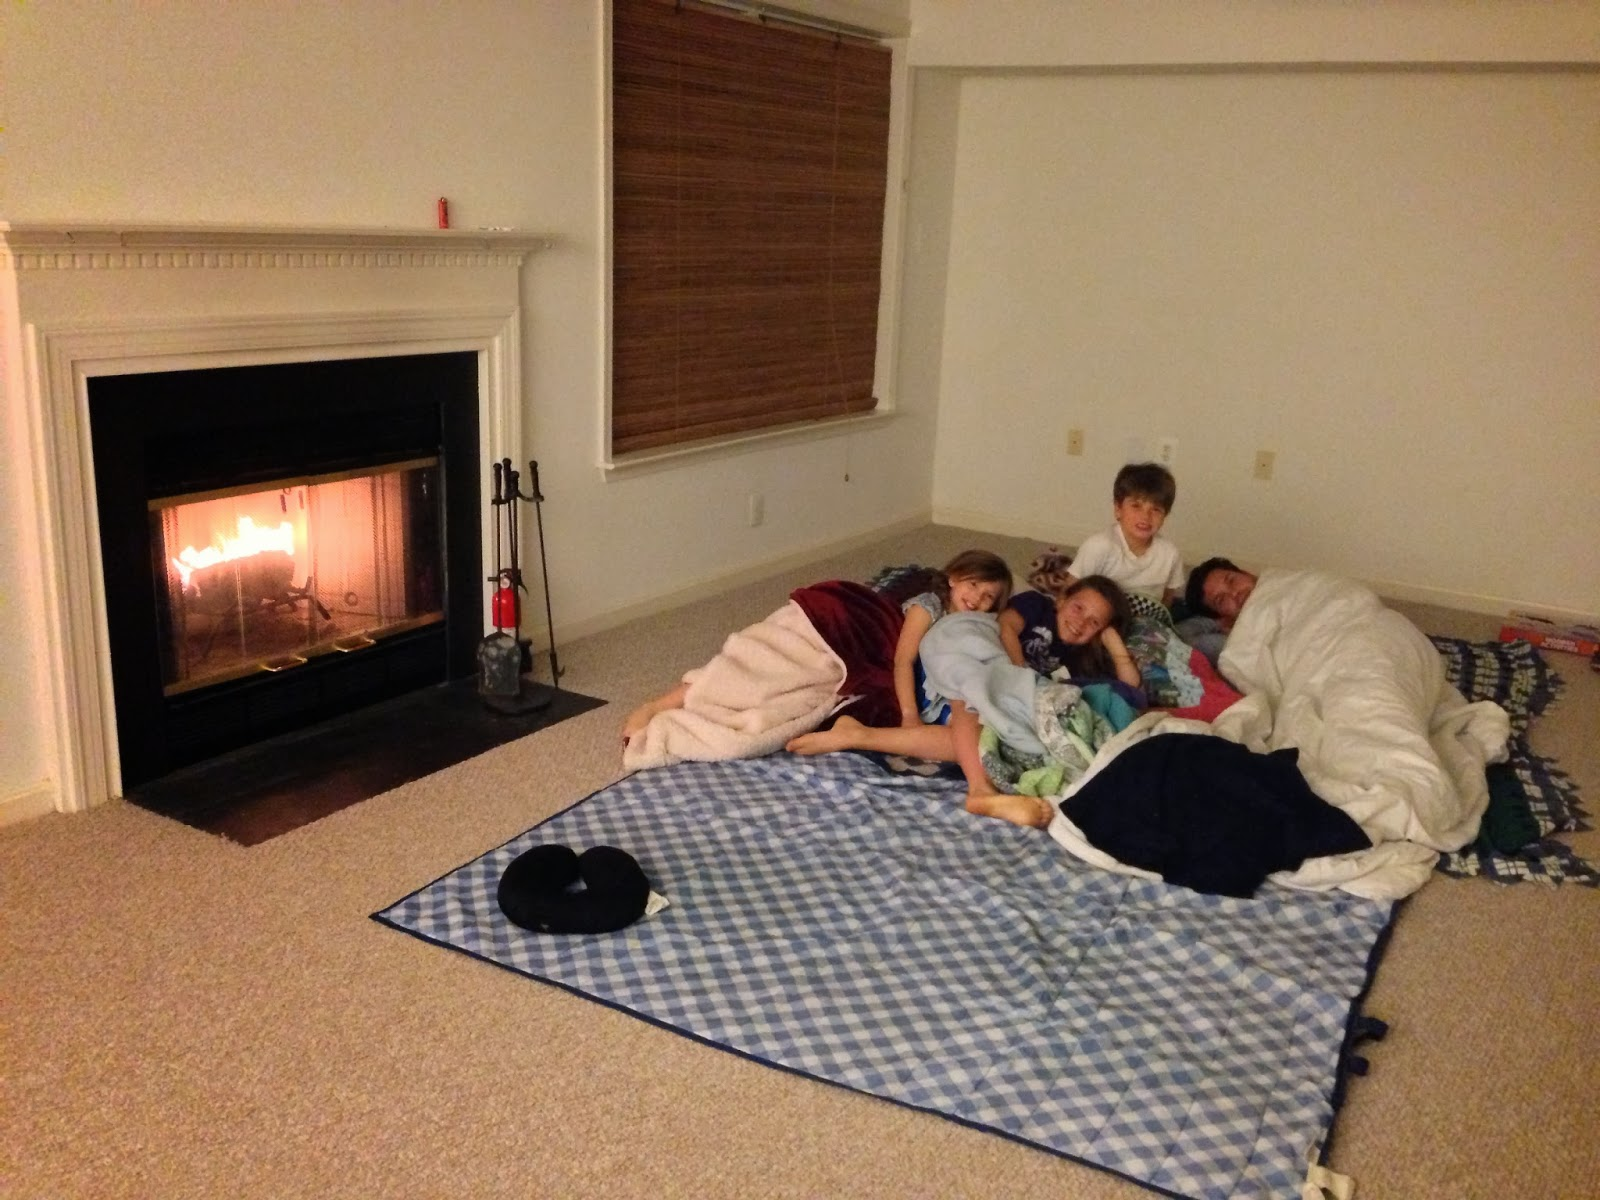 maryland, fireplace, family sleepover